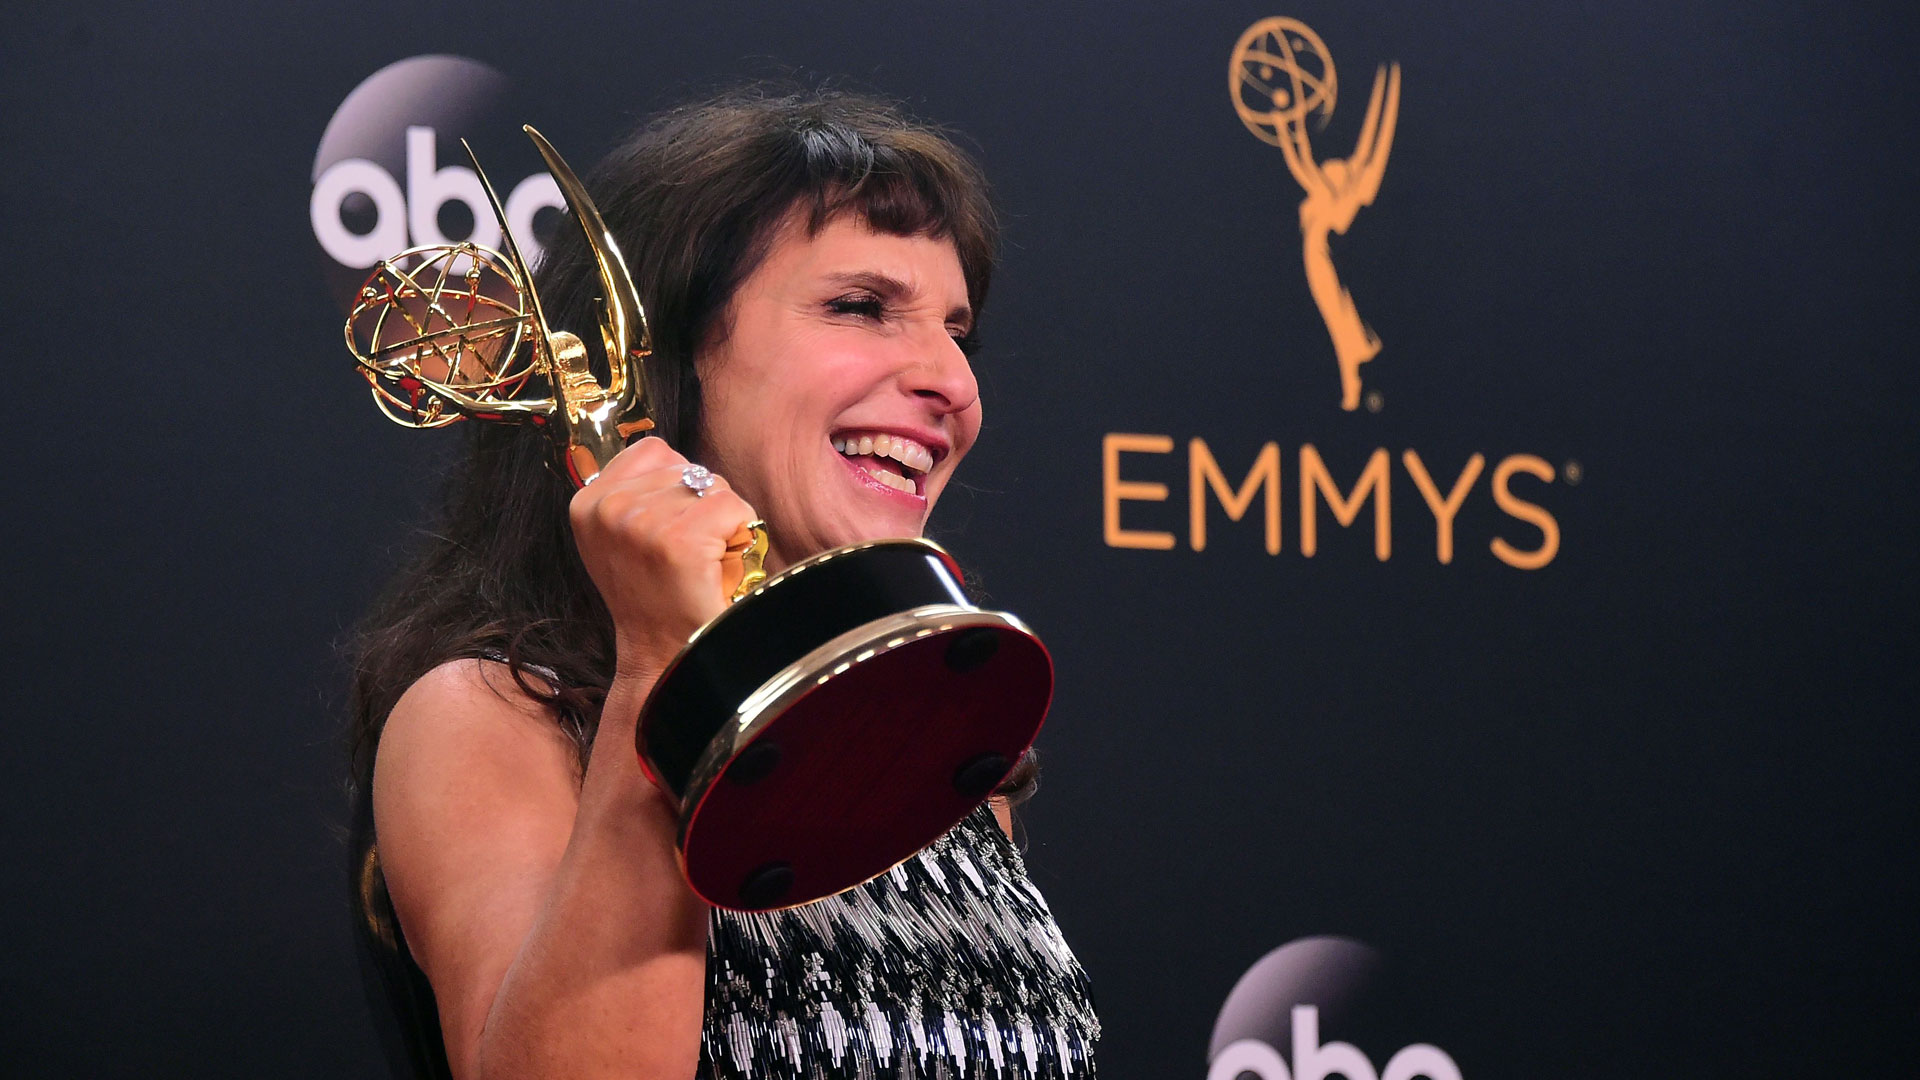 Danske Susanne Bier vant Emmy for sin regi av miniserien The Night Manager. (Foto: NTBScanpix, AFP, Frederic J Brown)